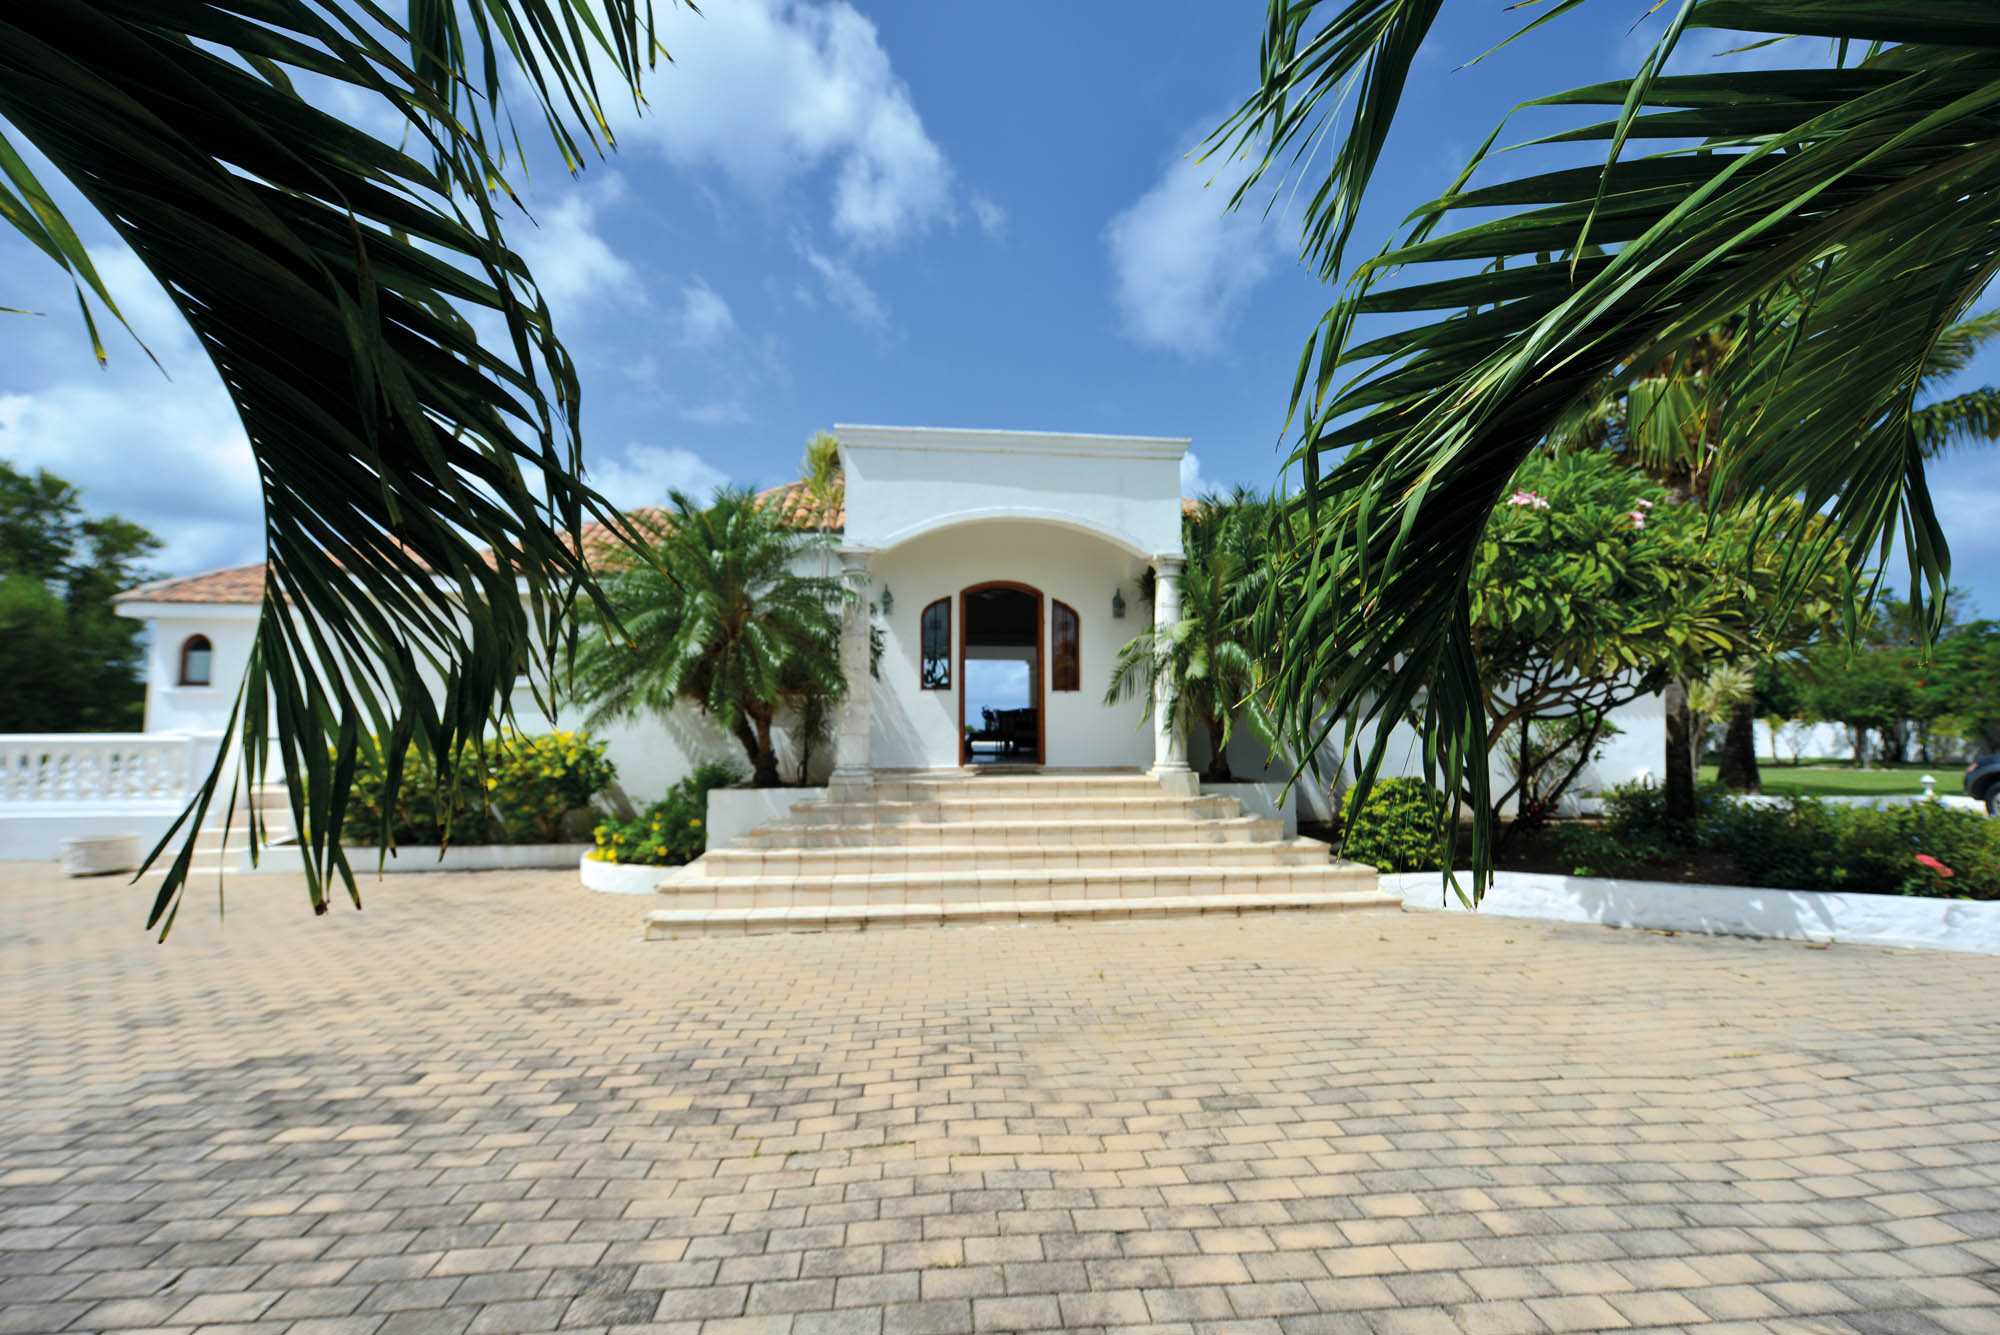 This beautiful villa rental in Terre-Basses, Saint Martin is accessible through an electric iron gate and a paved drive-way.